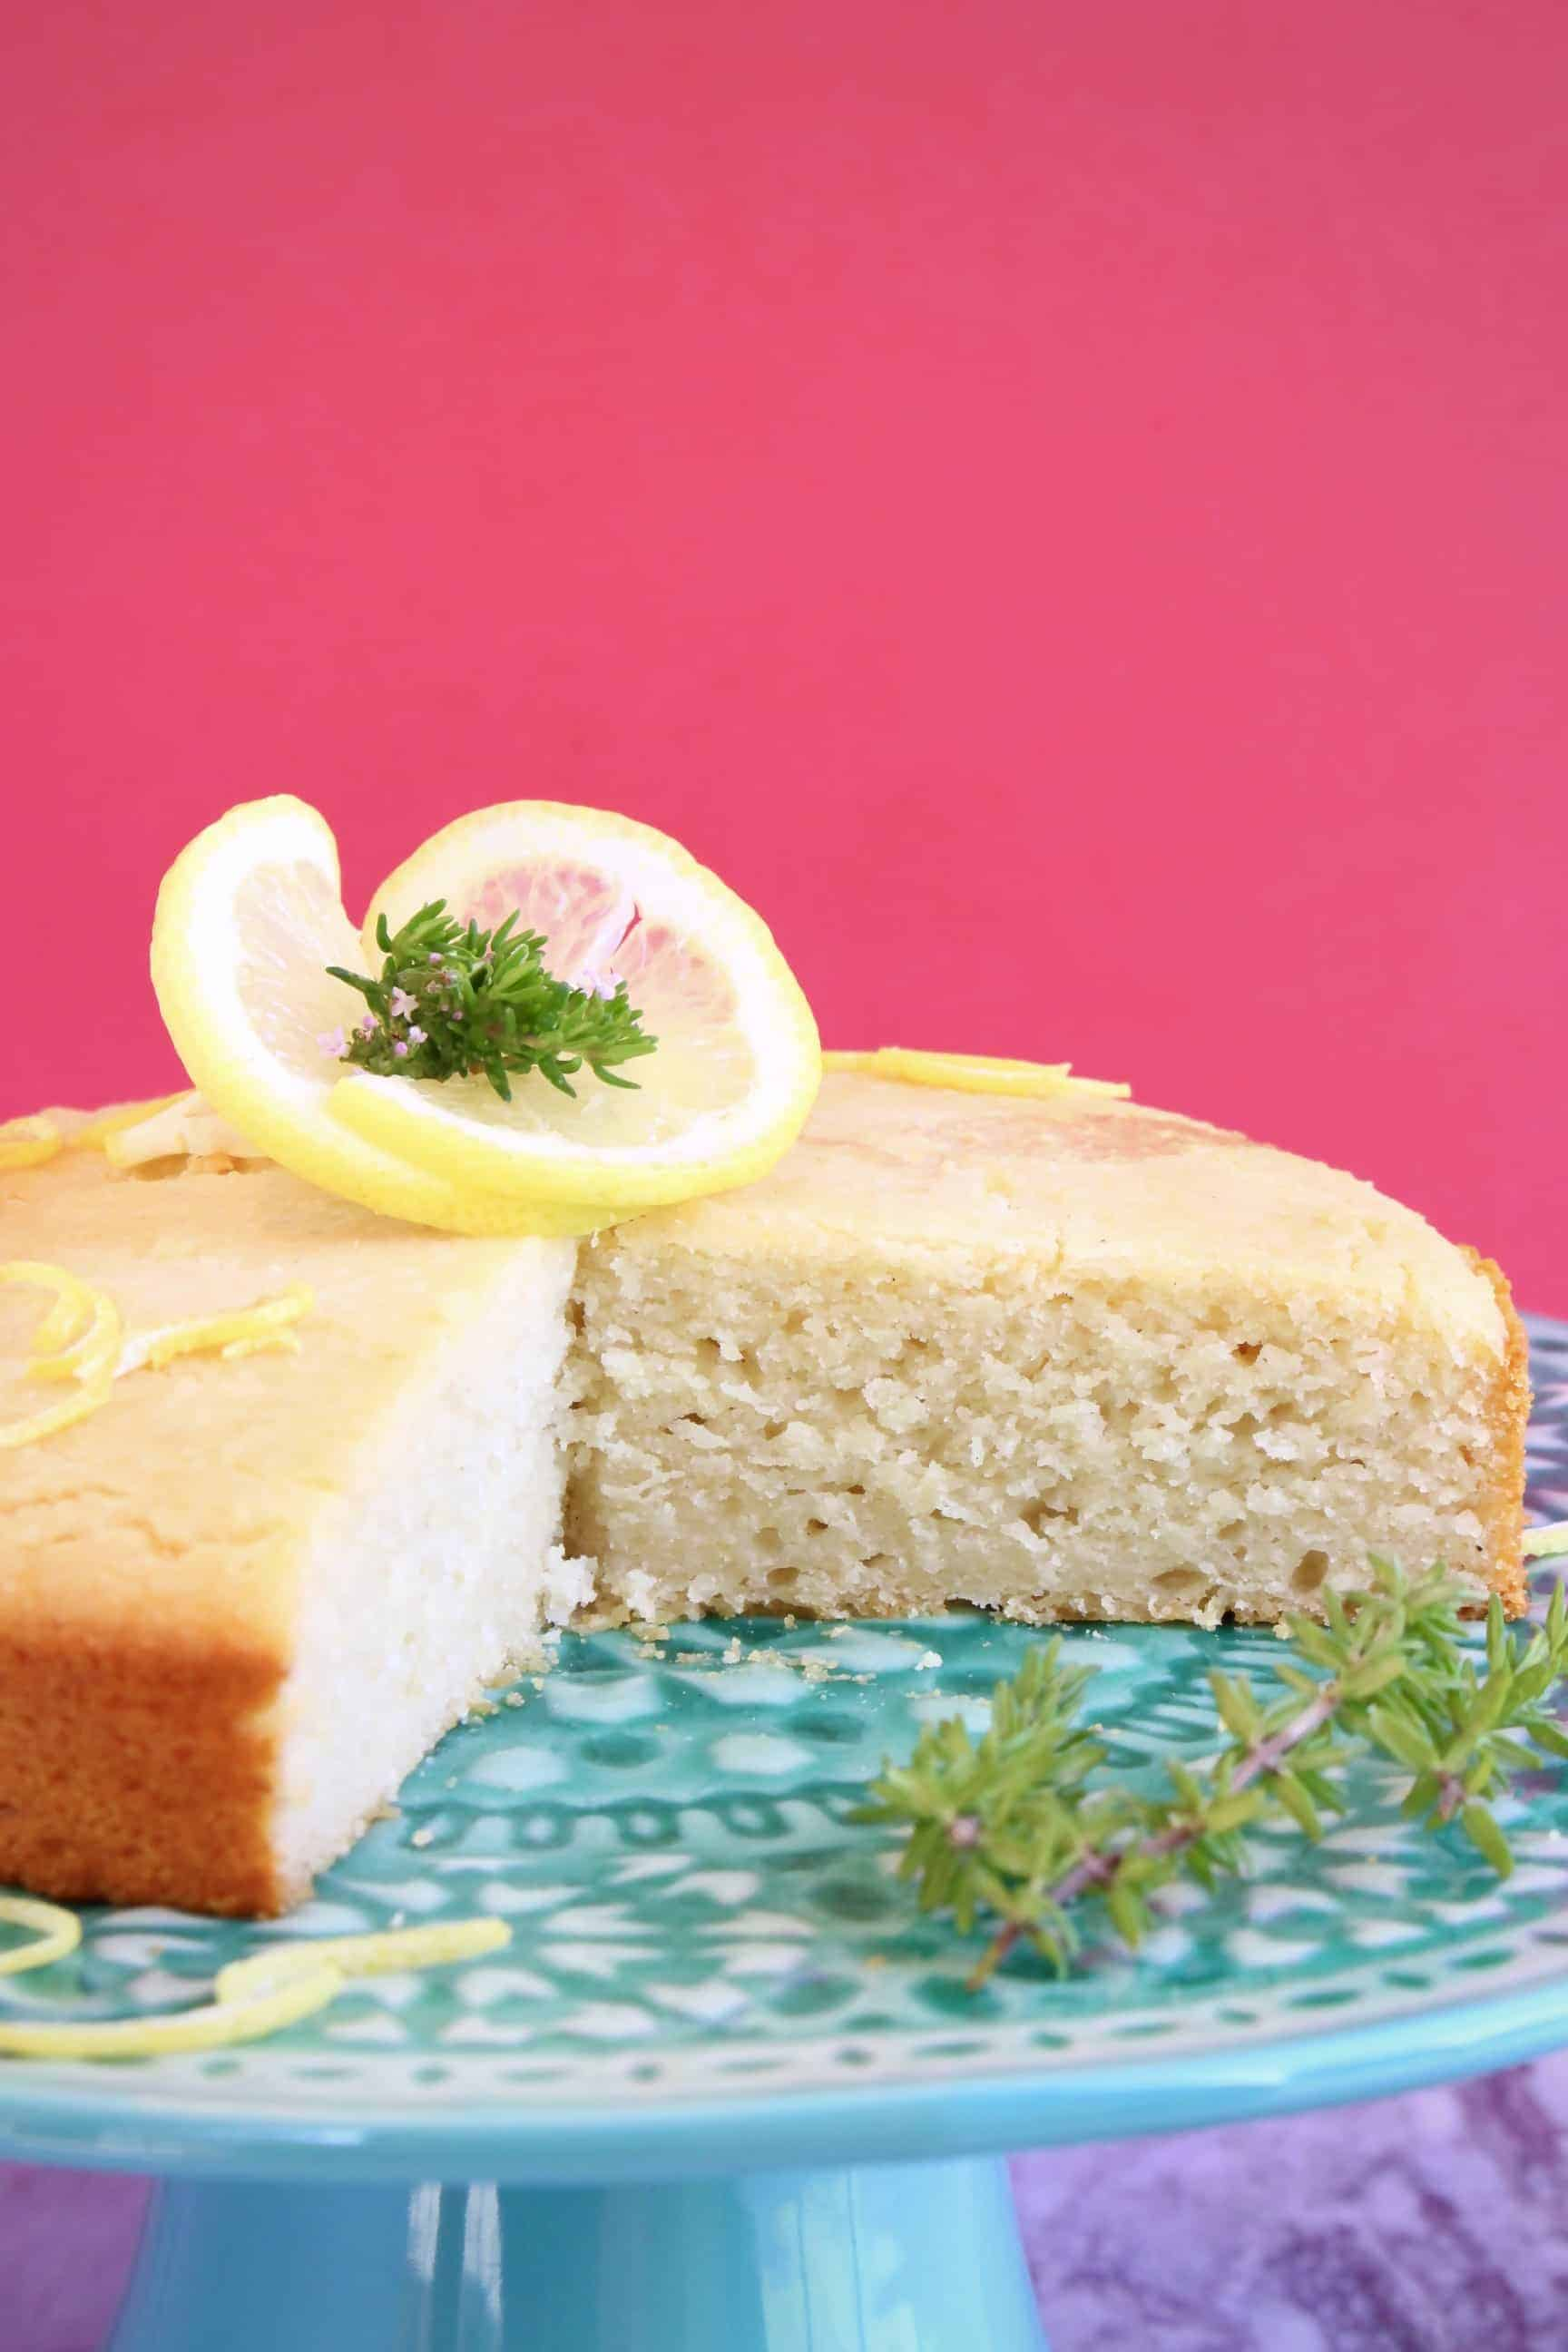 Gluten-free vegan lemon drizzle cake with a slice taken out of it on a cake stand